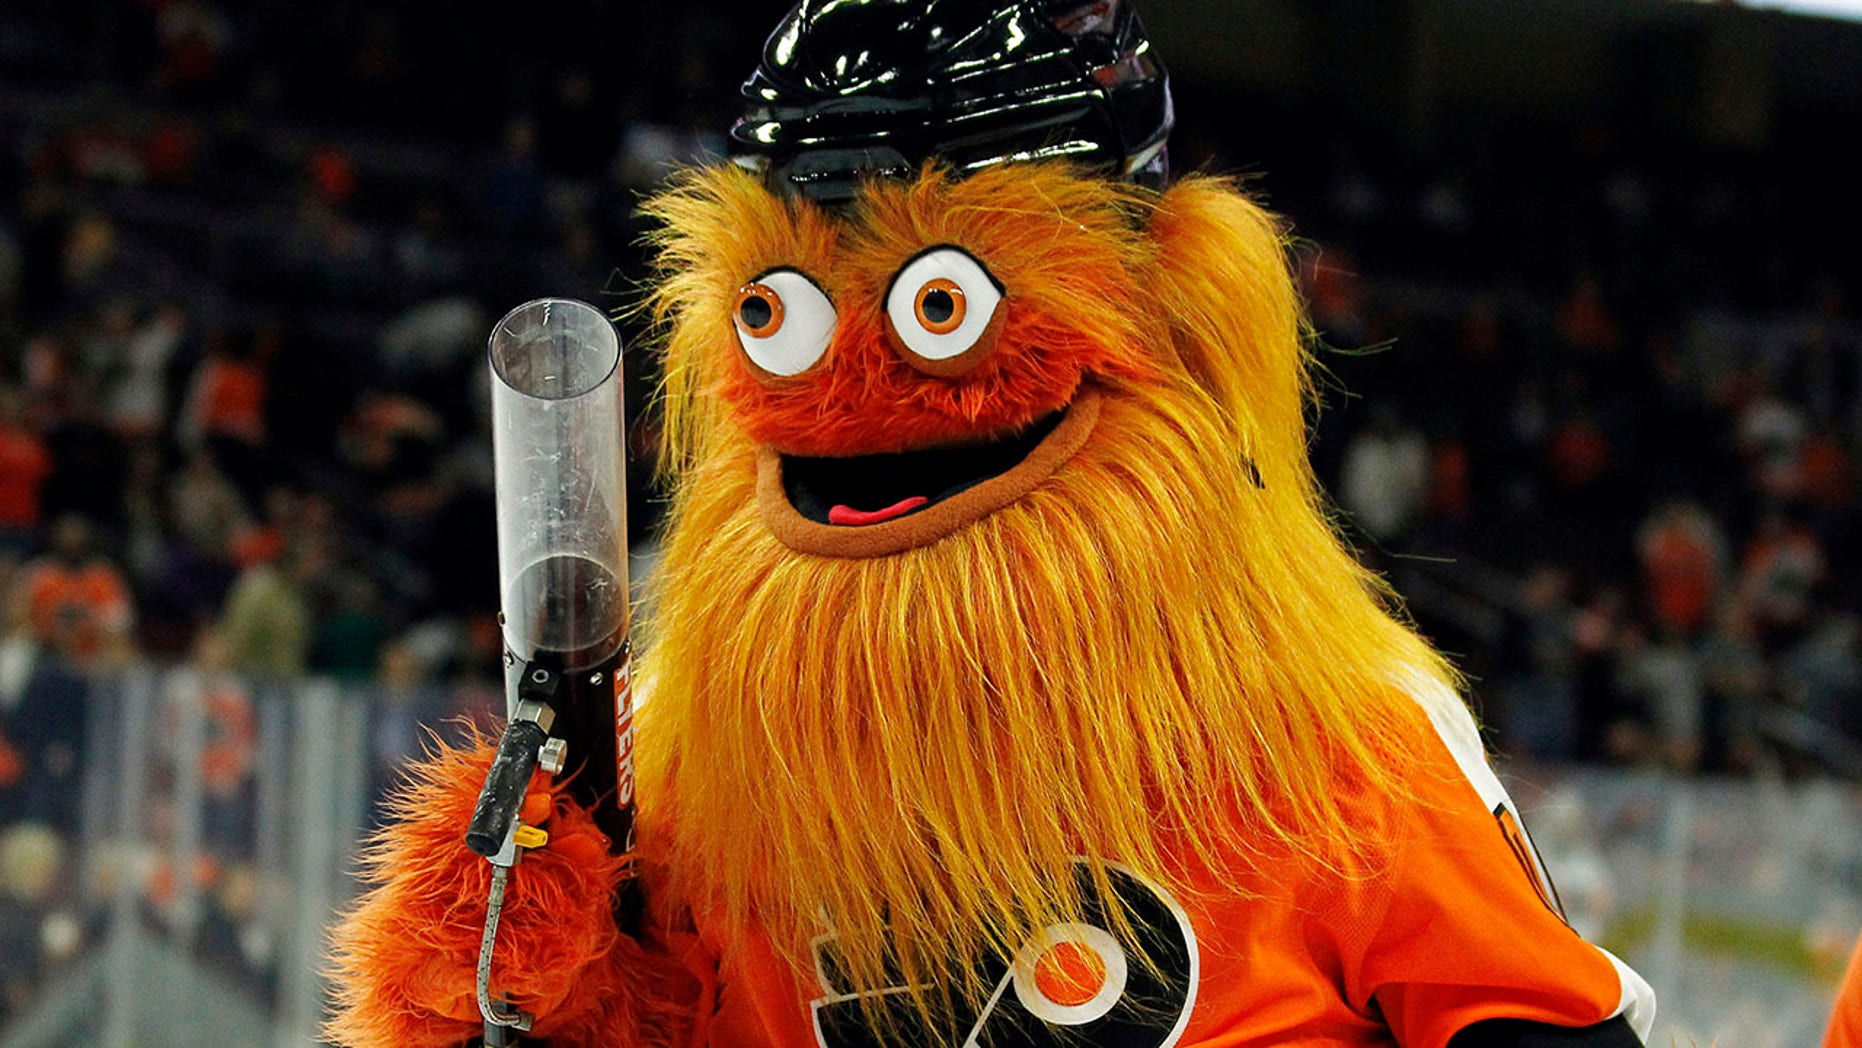 FILE - In this Sept. 24, 2018, file photo, the Philadelphia Flyers new mascot, Gritty, takes to the ice during the first intermission of the Flyers' preseason NHL hockey game against the Boston Bruins in Philadelphia. What better way to surprise a Philadelphia wedding party than with Gritty? CBS Philly reports newlyweds were shocked when the buck-eyed, 7-foot mascot for the NHL's Flyers showed up Friday night, Nov. 23, 2018, and started dancing to laughs and applause.